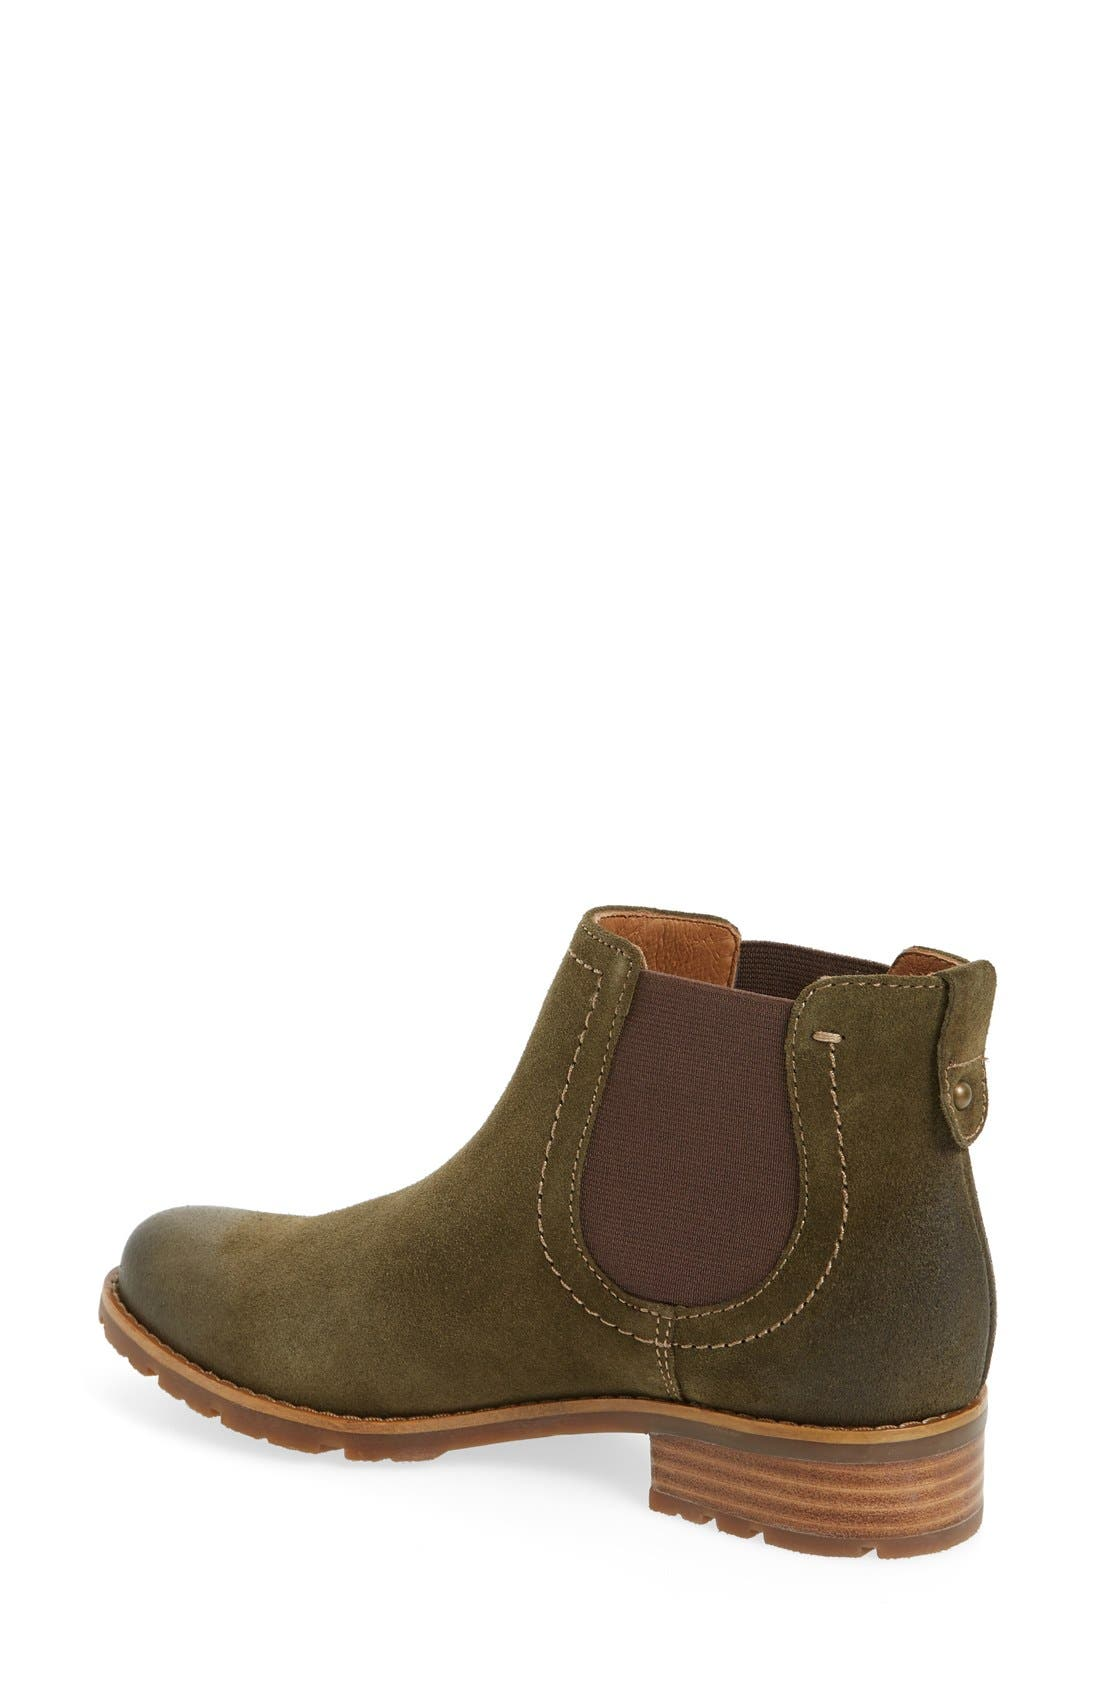 'Selby' Chelsea Bootie,                             Alternate thumbnail 13, color,